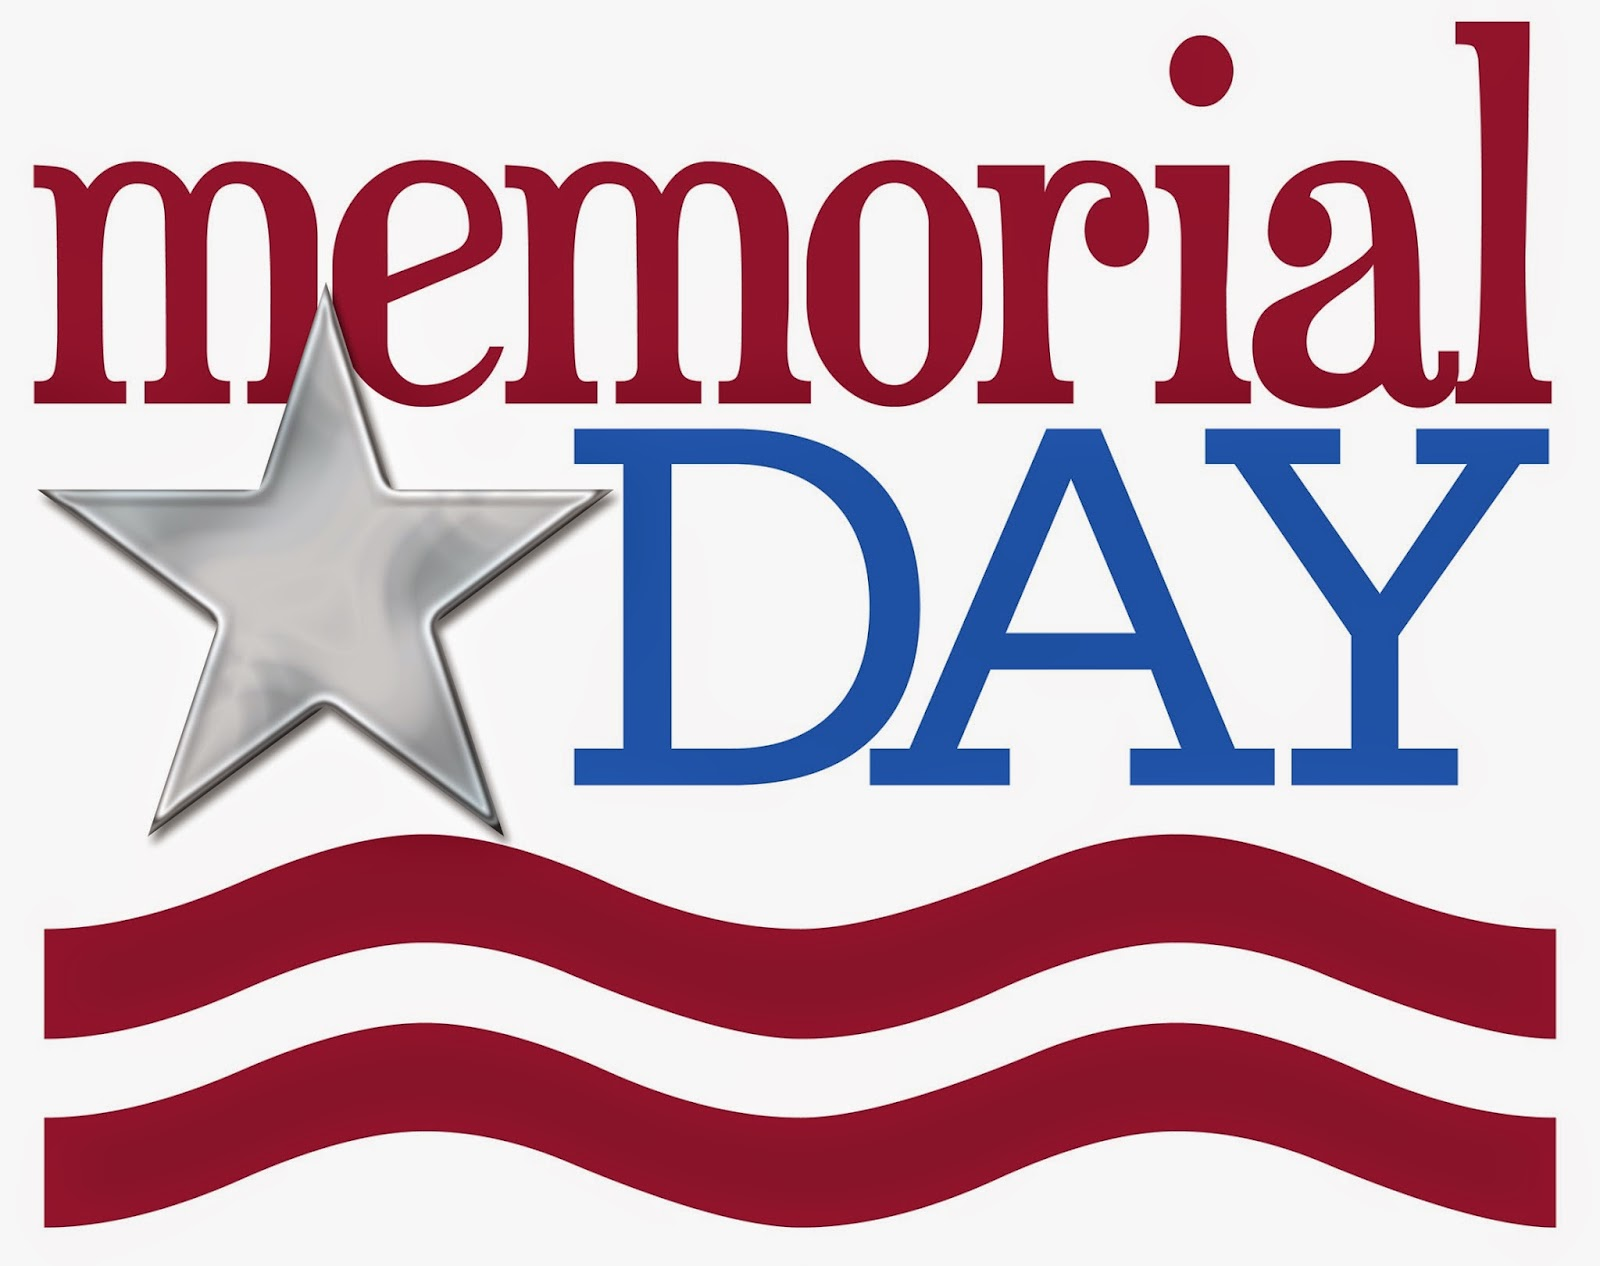 Memorial day clipart facebook cover clip royalty free download memorial day 2015 fb cover | happymemorialdayfbcover clip royalty free download